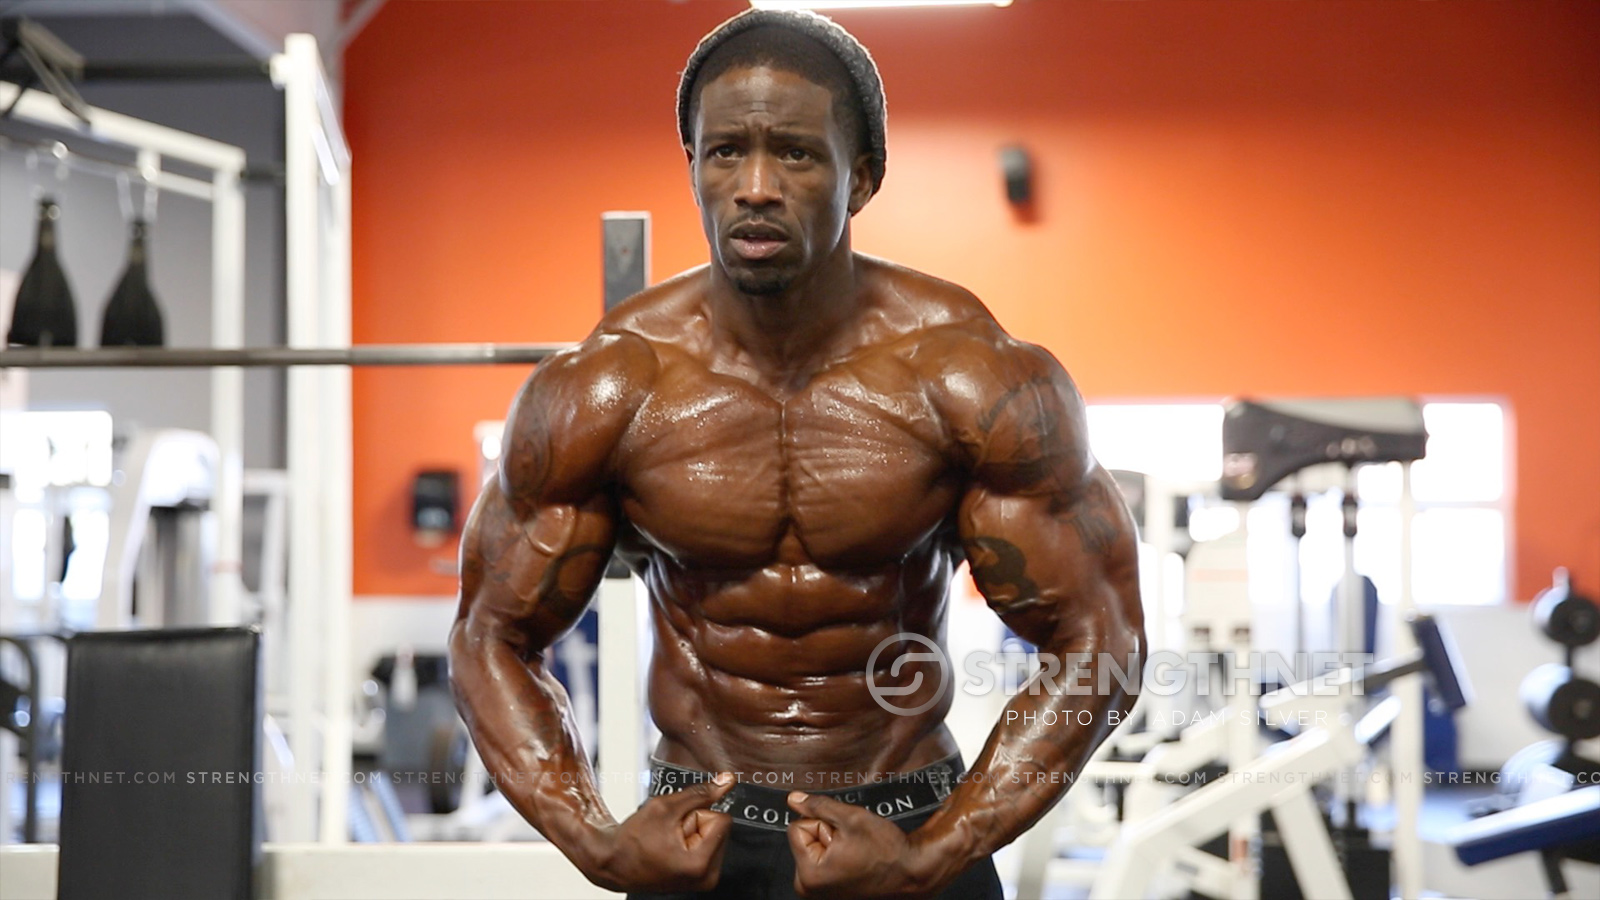 Ifbb Pro George Brown Strengthnet